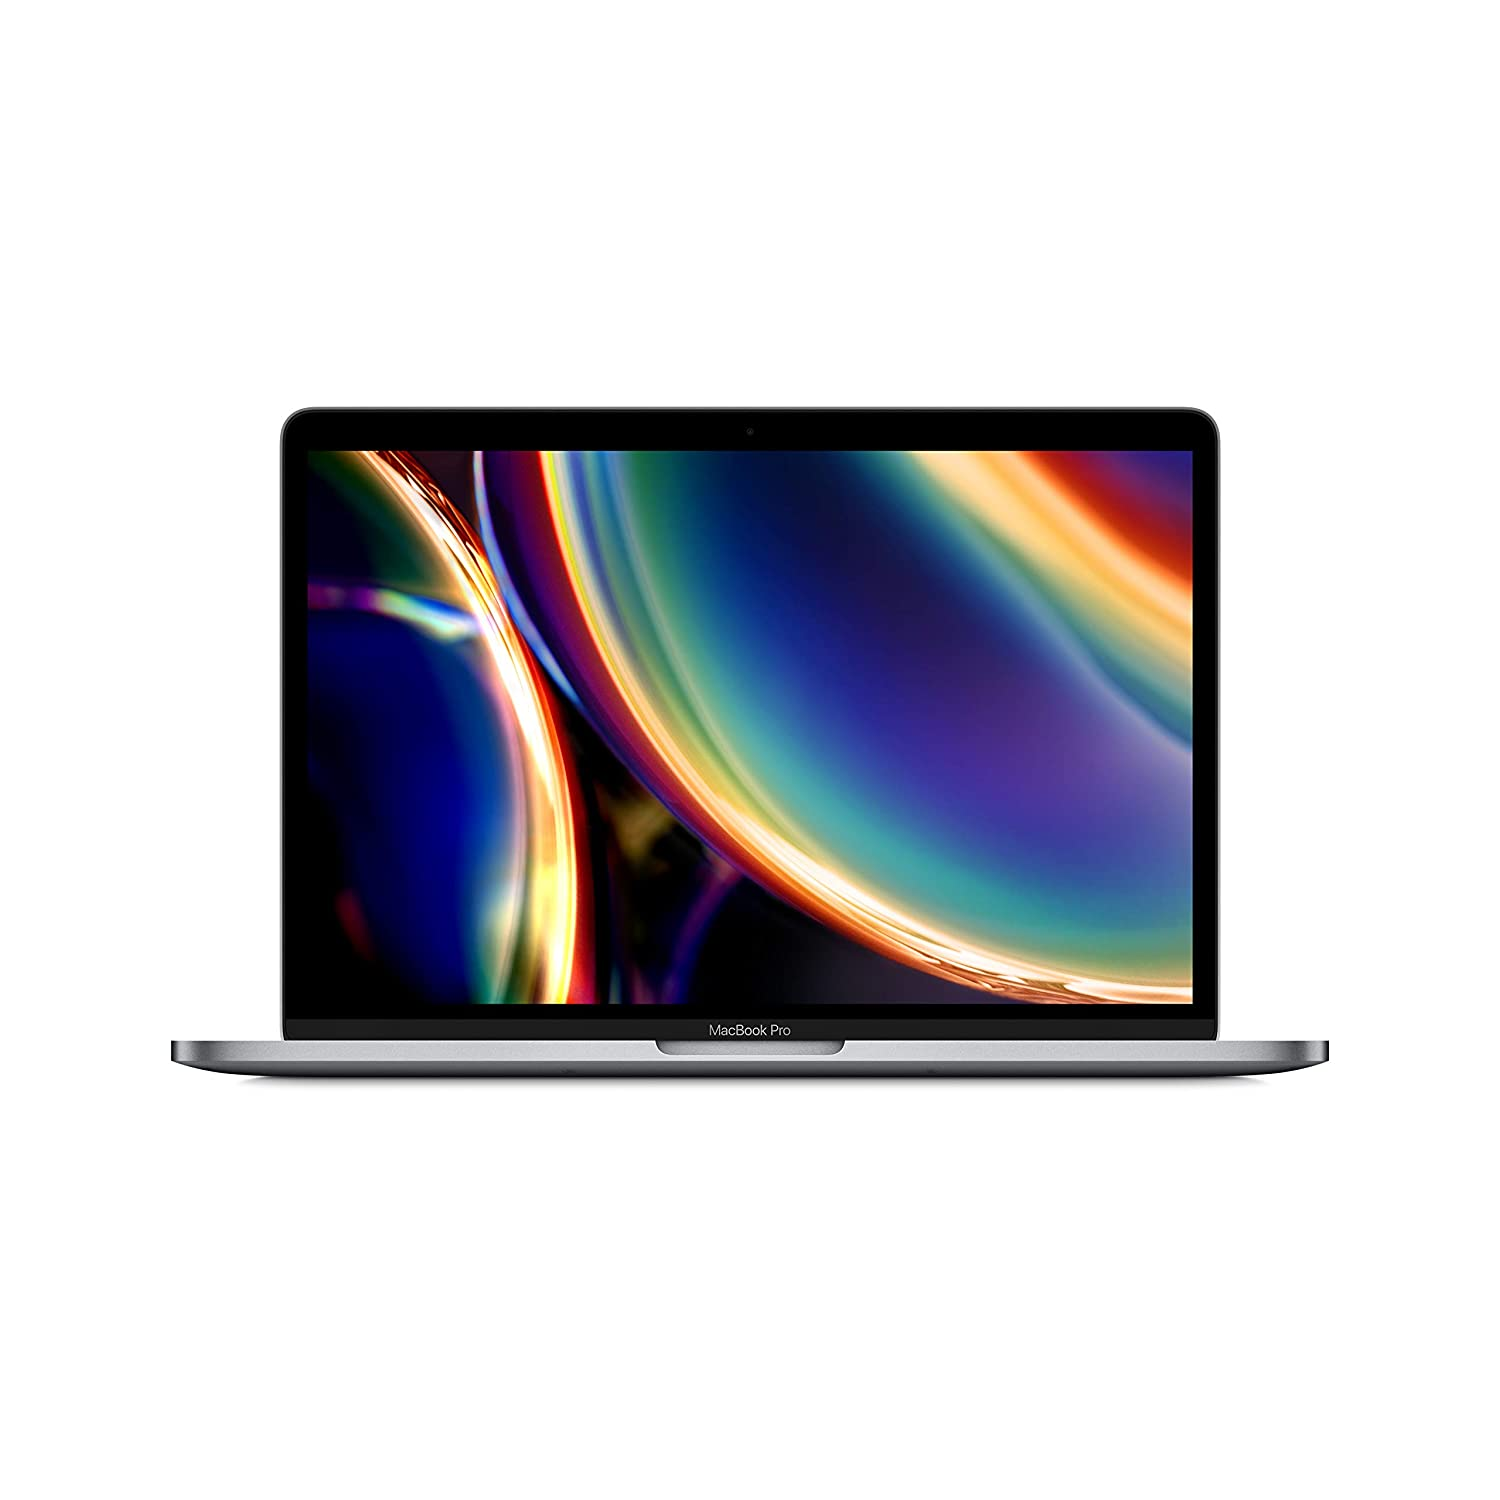 Apple MacBook Pro (13-inch, 8GB RAM, 256GB SSD, 1.4GHz Quad-core 8th-Generation Intel Core i5 Processor, Magic Keyboard) - Space Grey